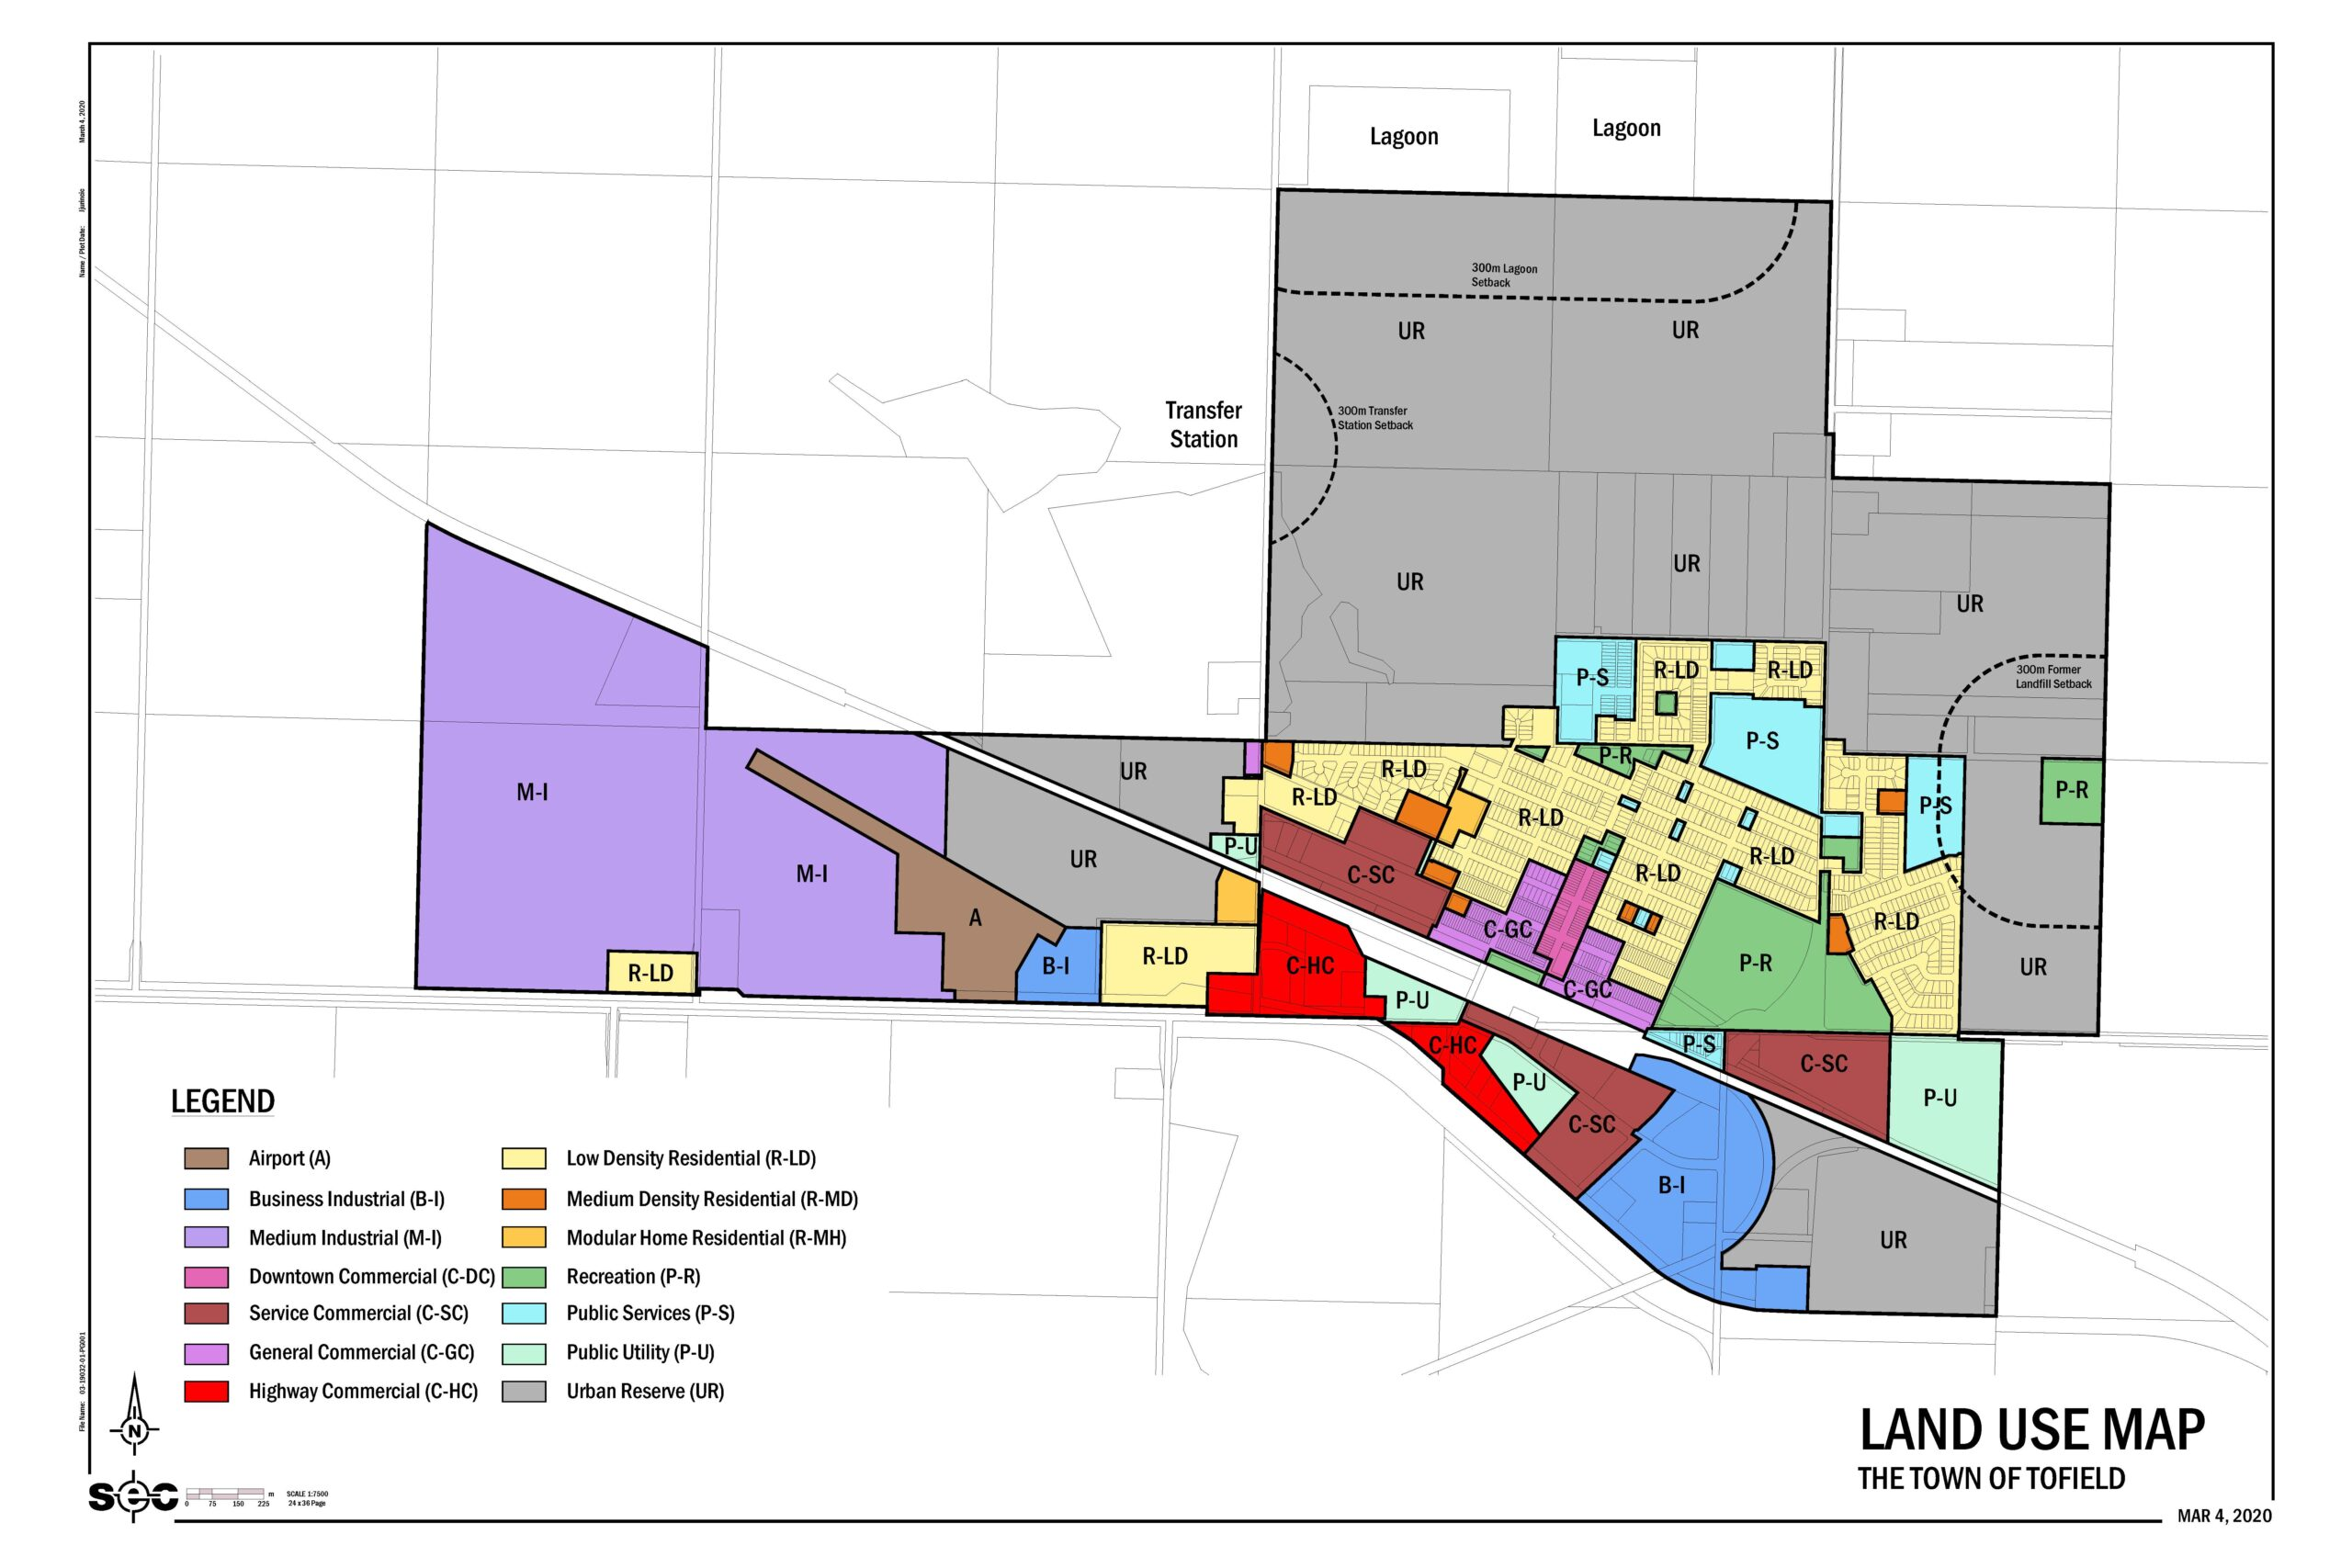 https://tofieldalberta.ca/wp-content/uploads/2021/02/Part-10-Land-Use-Distric-Map-Mar-520-scaled.jpg